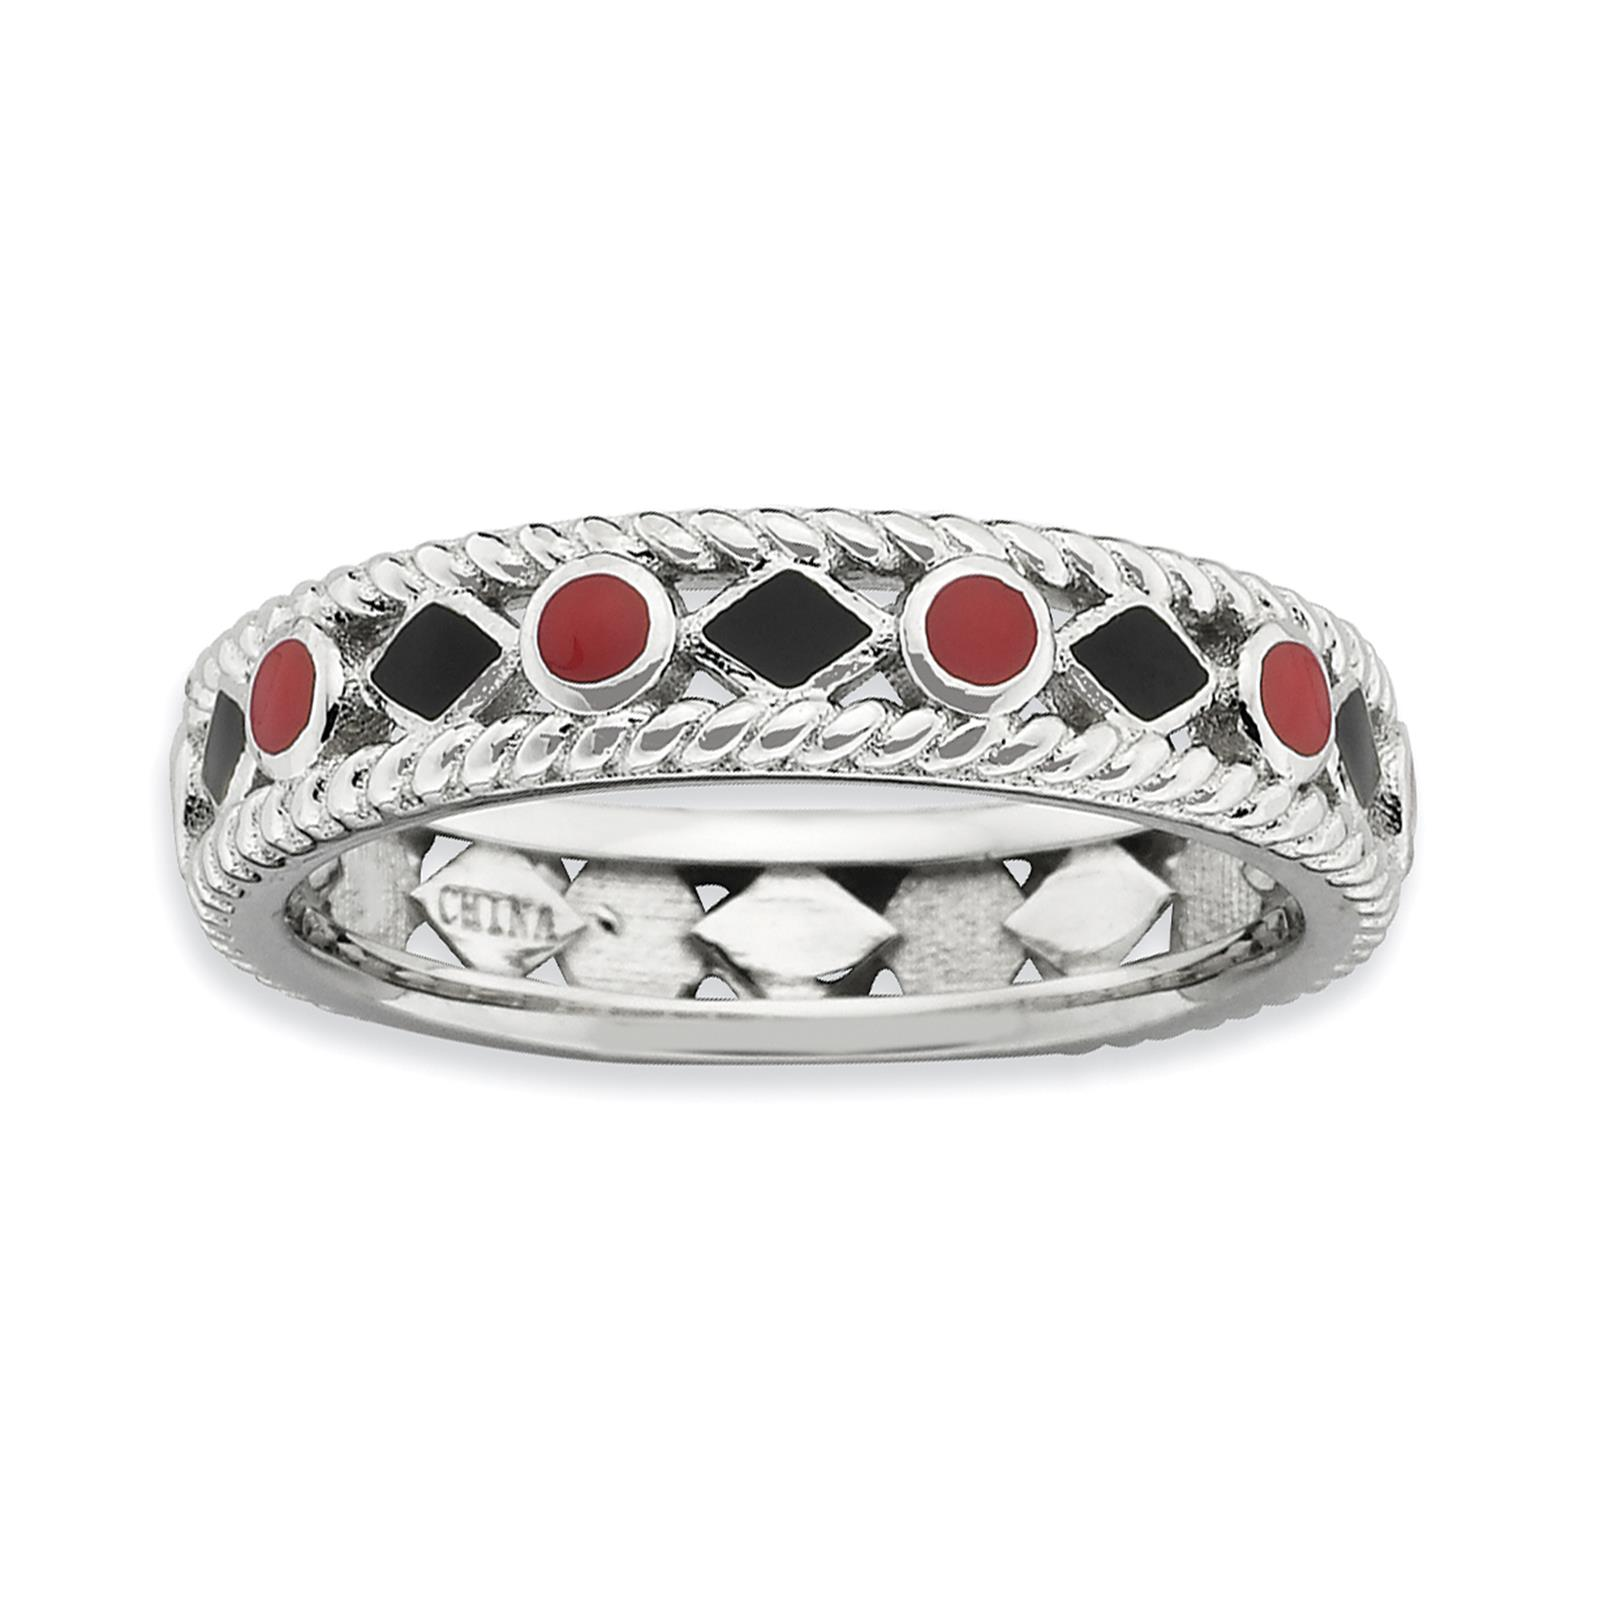 Stackable Expressions Sterling Silver Polished Red/Black Enameled Band Ring Sz10